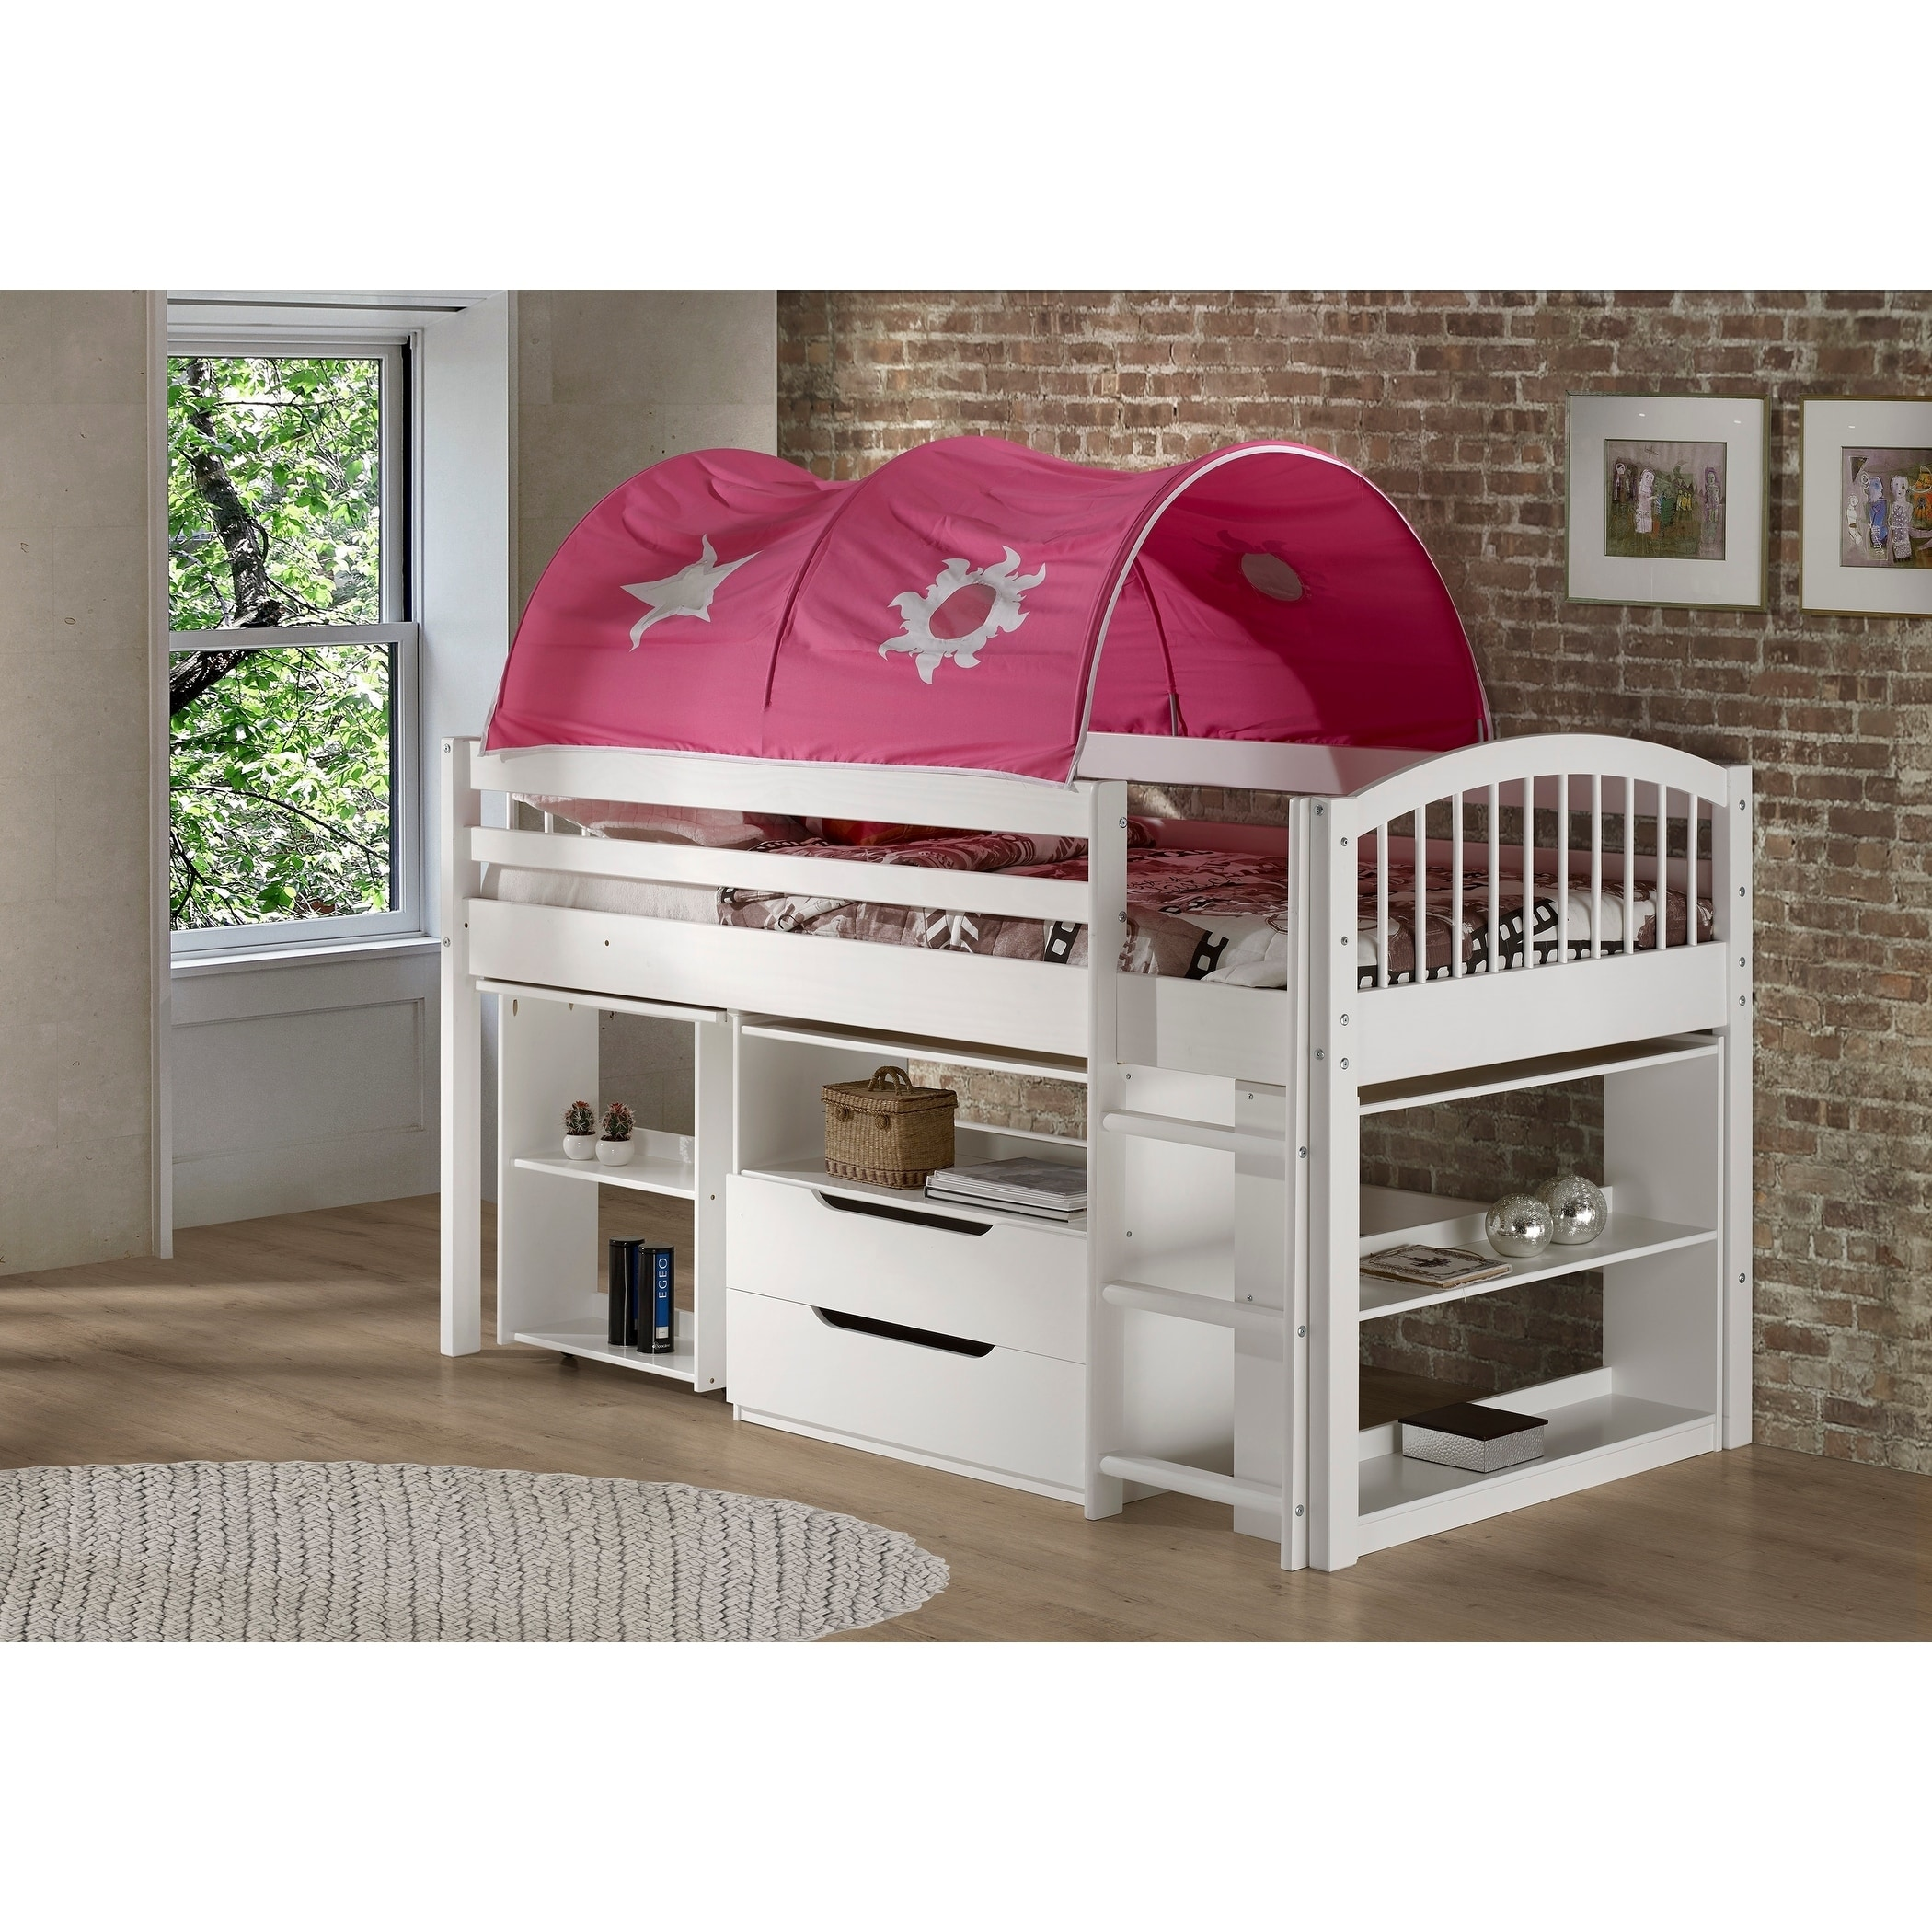 Low Loft Bed With Storage Drawers